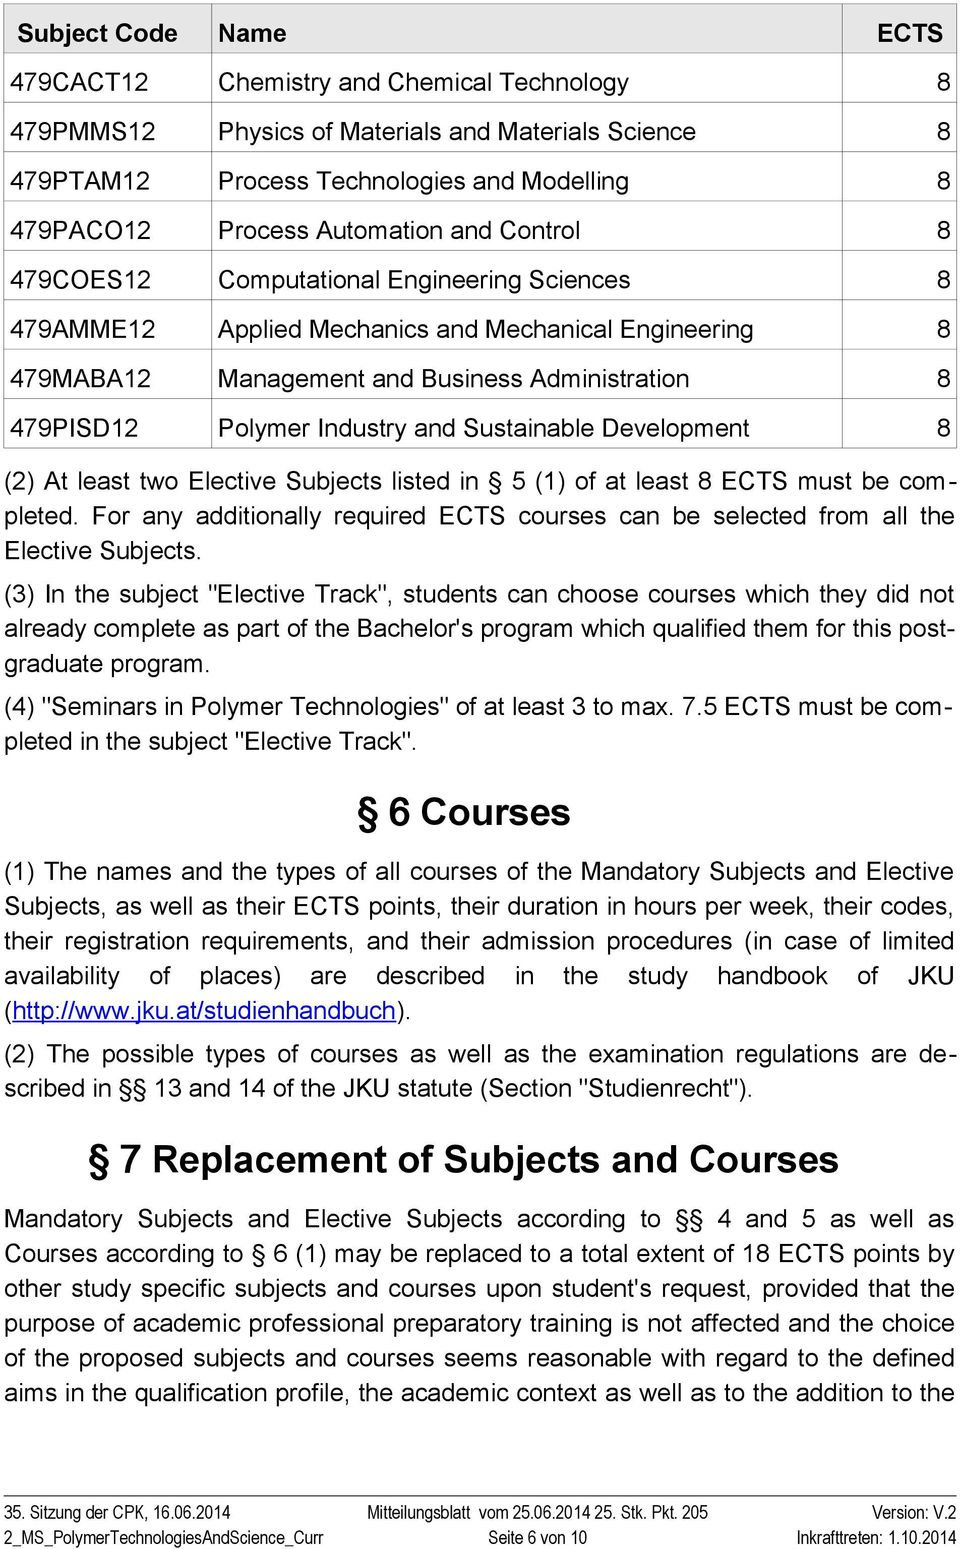 Sustainable Development 8 (2) At least two Elective Subjects listed in 5 (1) of at least 8 ECTS must be completed.